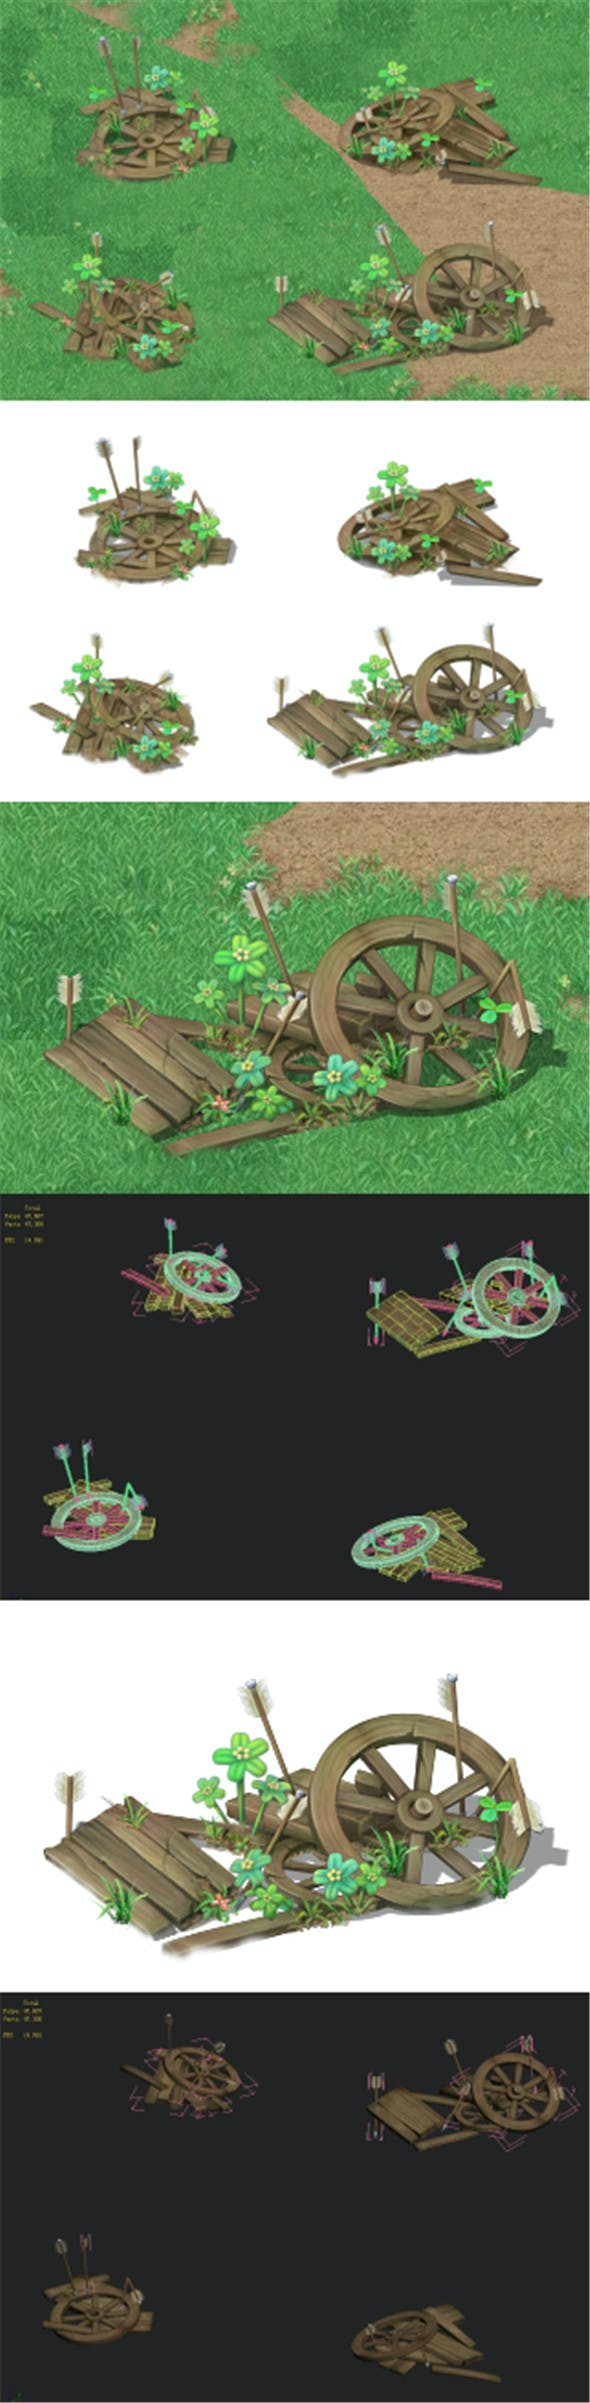 Cartoon version - broken wheels - 3DOcean Item for Sale